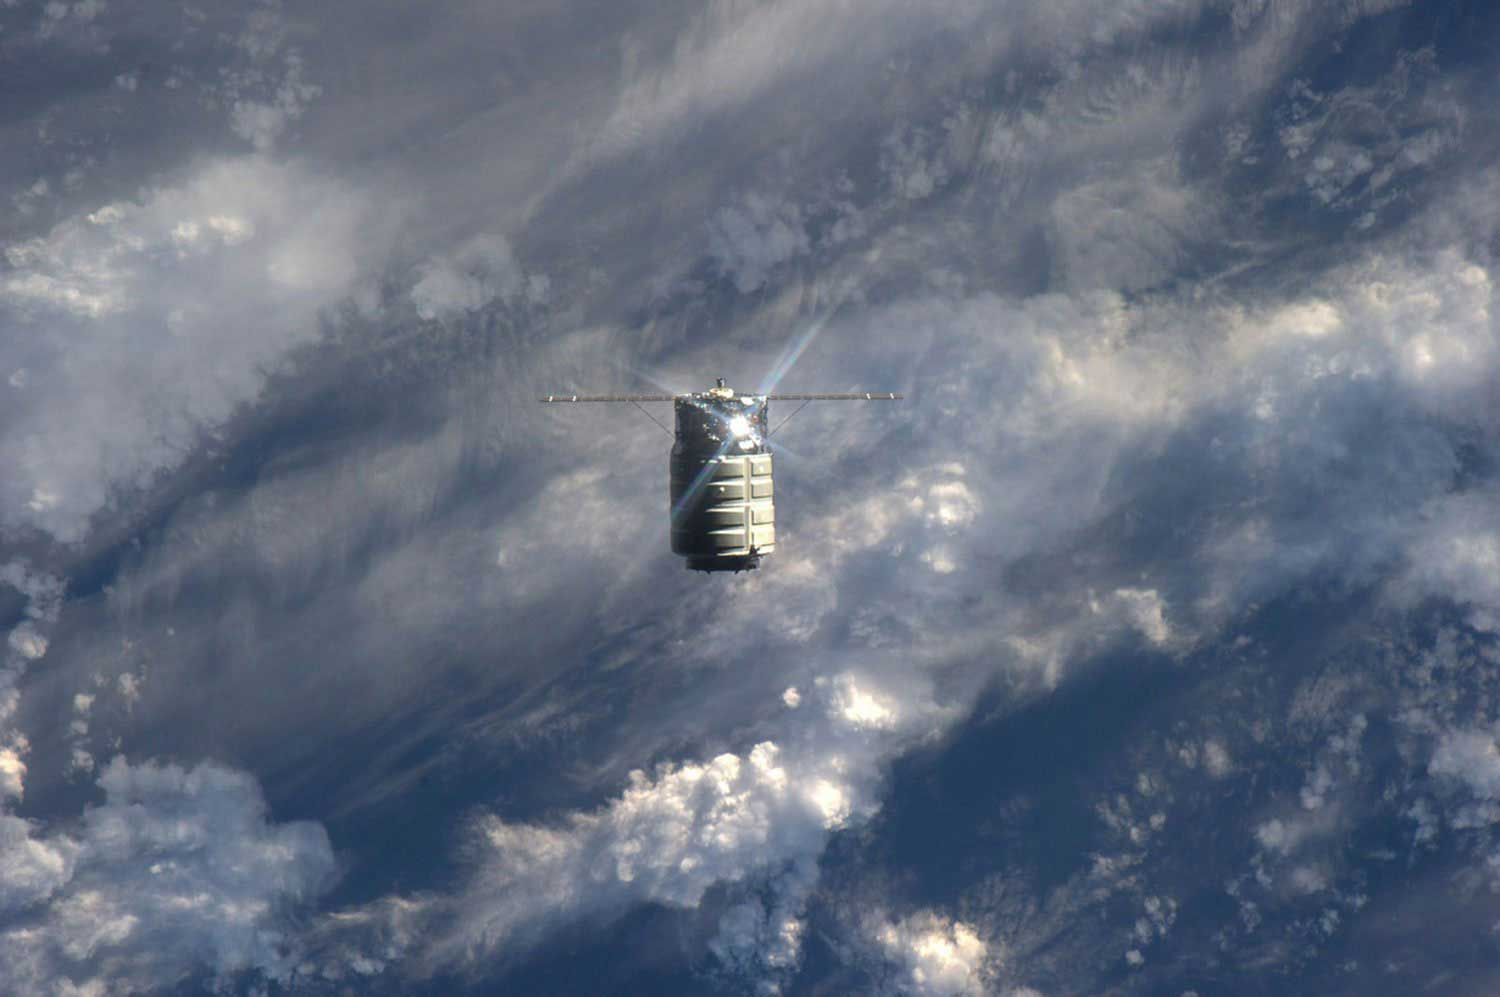 The unmanned U.S. commercial cargo ship Cygnus is seen approaching the International Space Station on Sept. 29, 2013. Cygnus flew itself to the International Space Station, completing the primary goal of its debut test flight before Station supply runs begin in December.